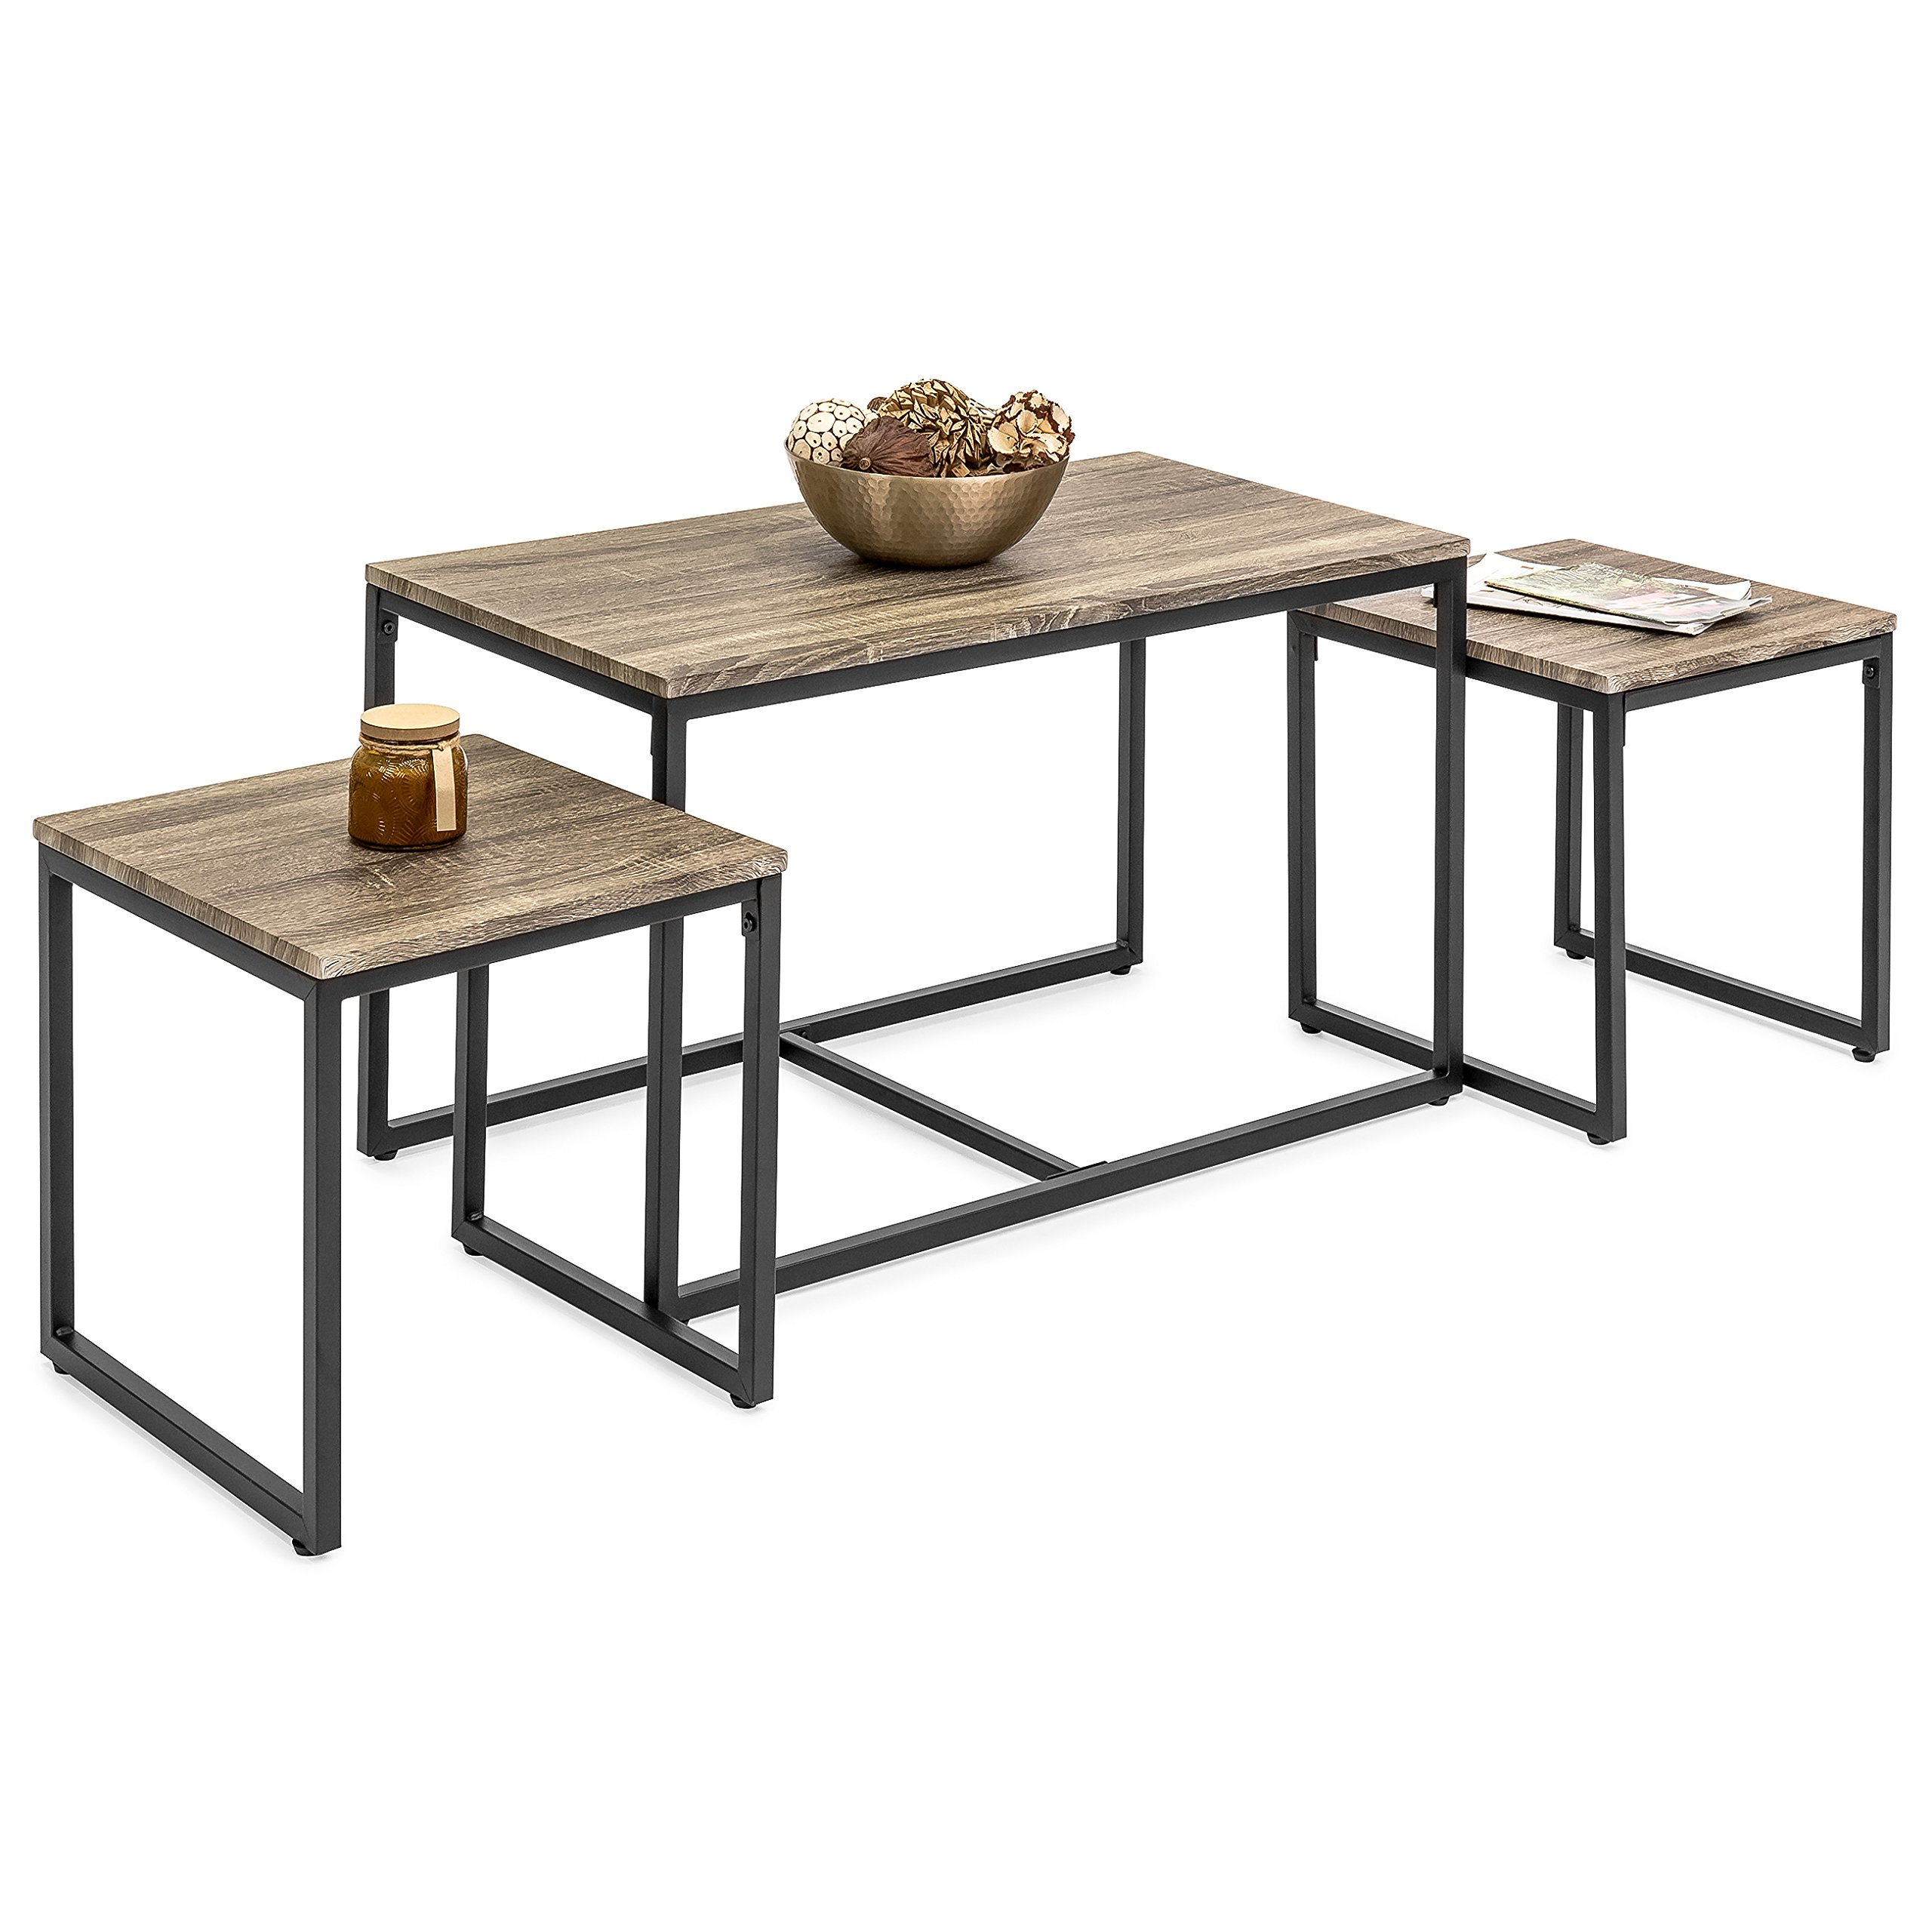 Best Choice Products 3-Piece Modern Nesting Coffee Accent Table Living Room Furniture Lounge Set w/ 2 End Tables - Brown by Best Choice Products